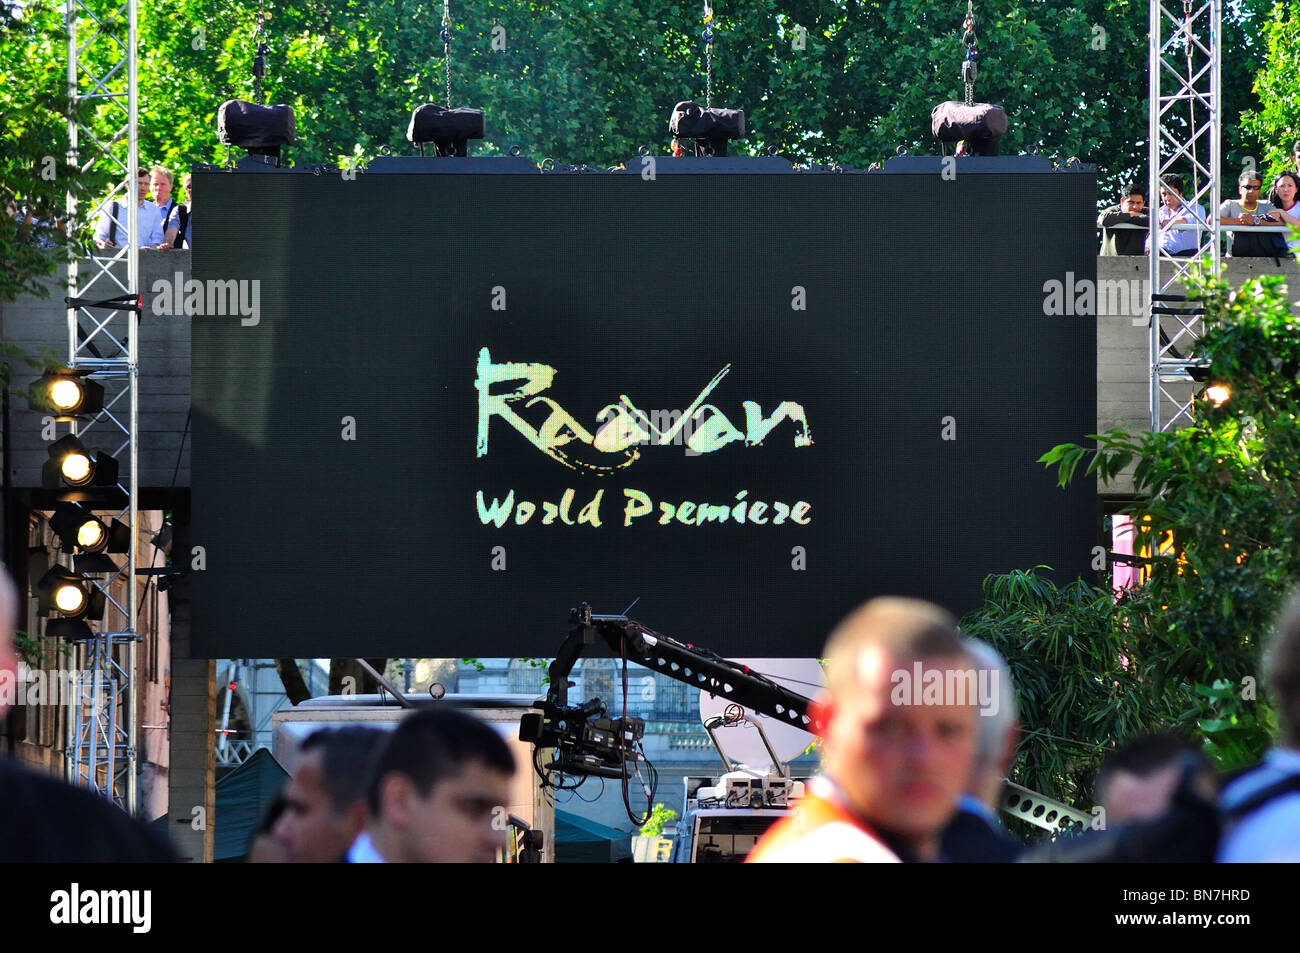 Raavan World Premier at the British Film Institute, London - Stock Image